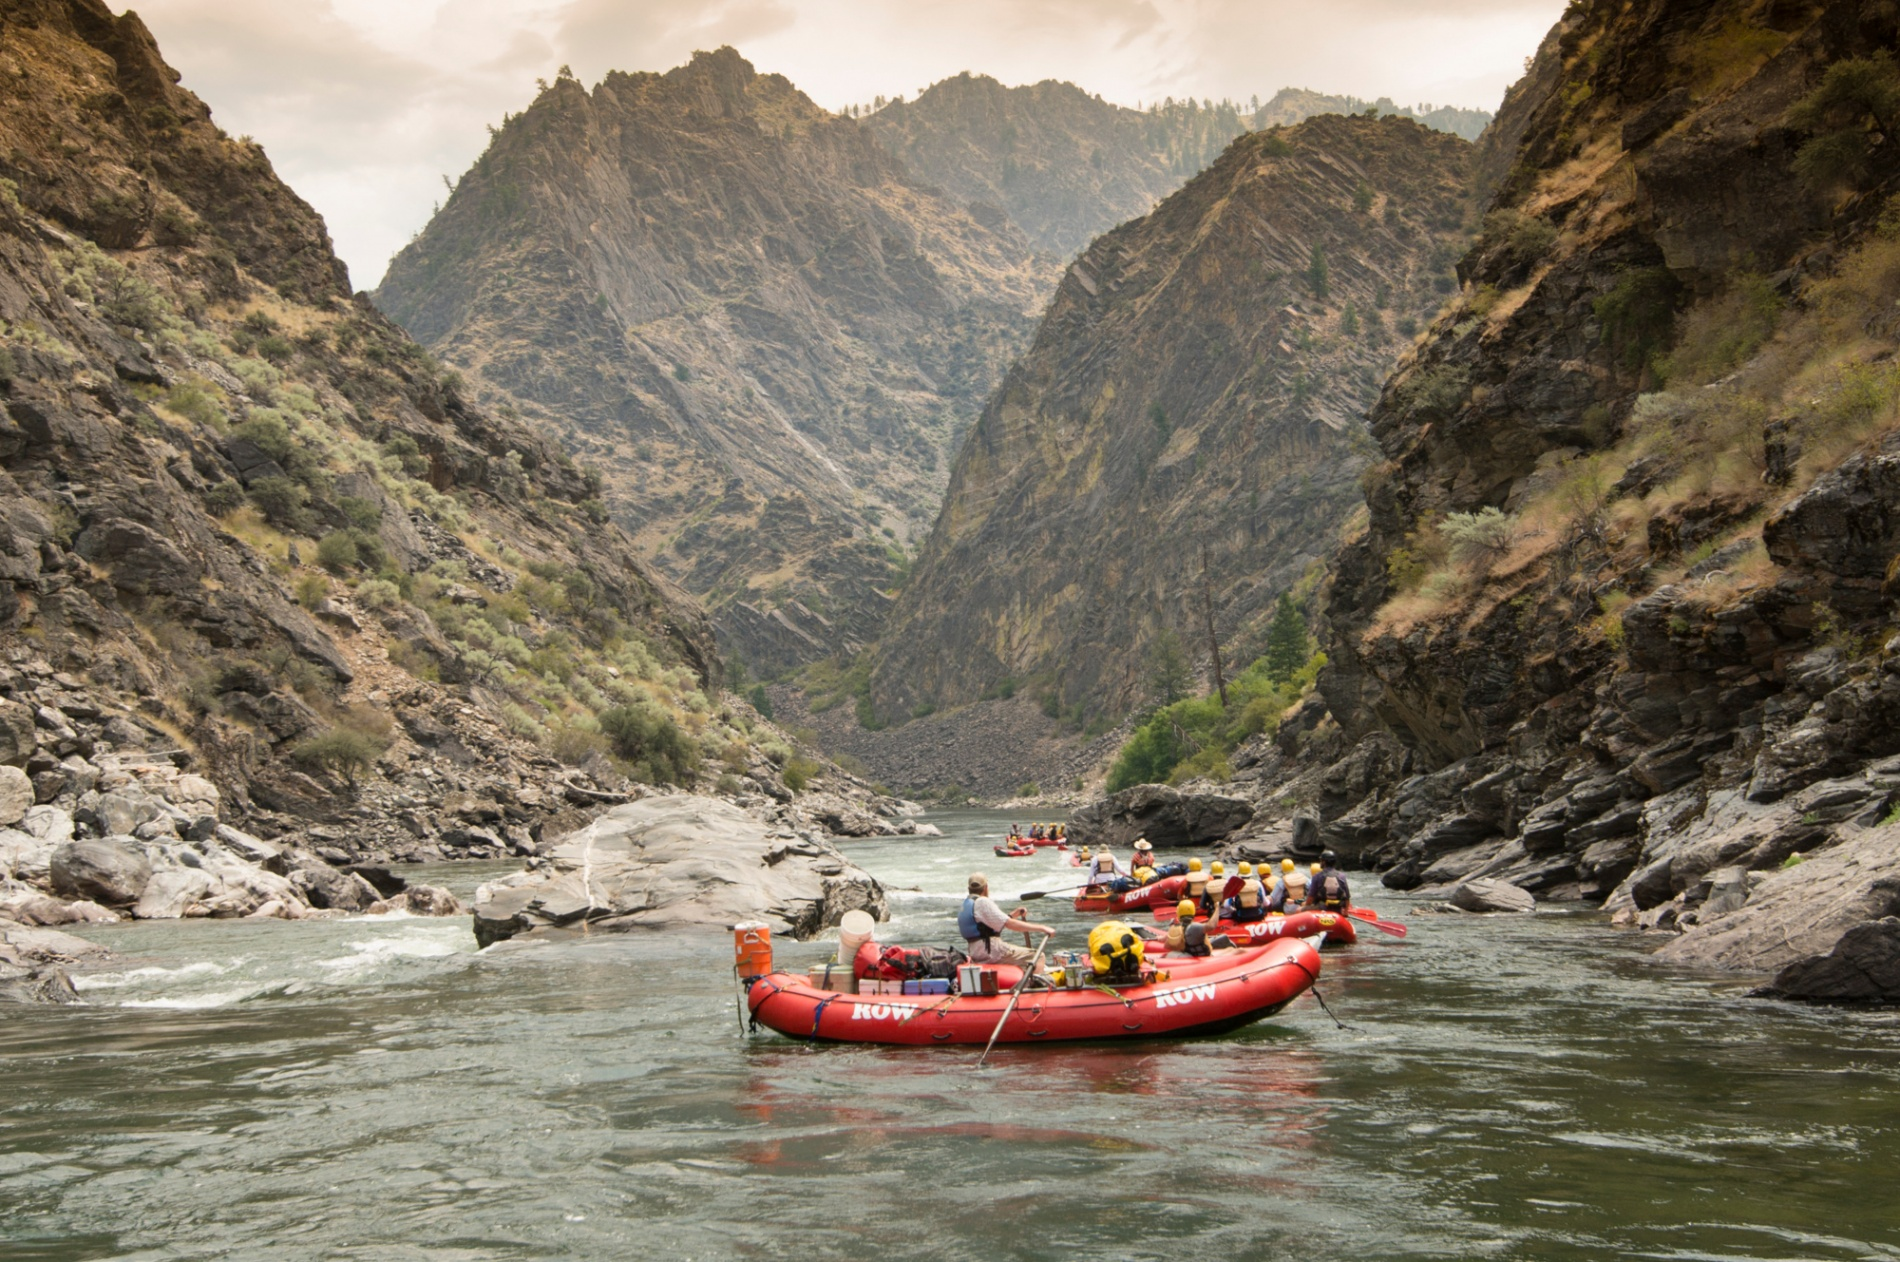 - The Middle Fork of Idaho's Salmon River runs 104 miles through one of America's most beautiful National Wildernesses.